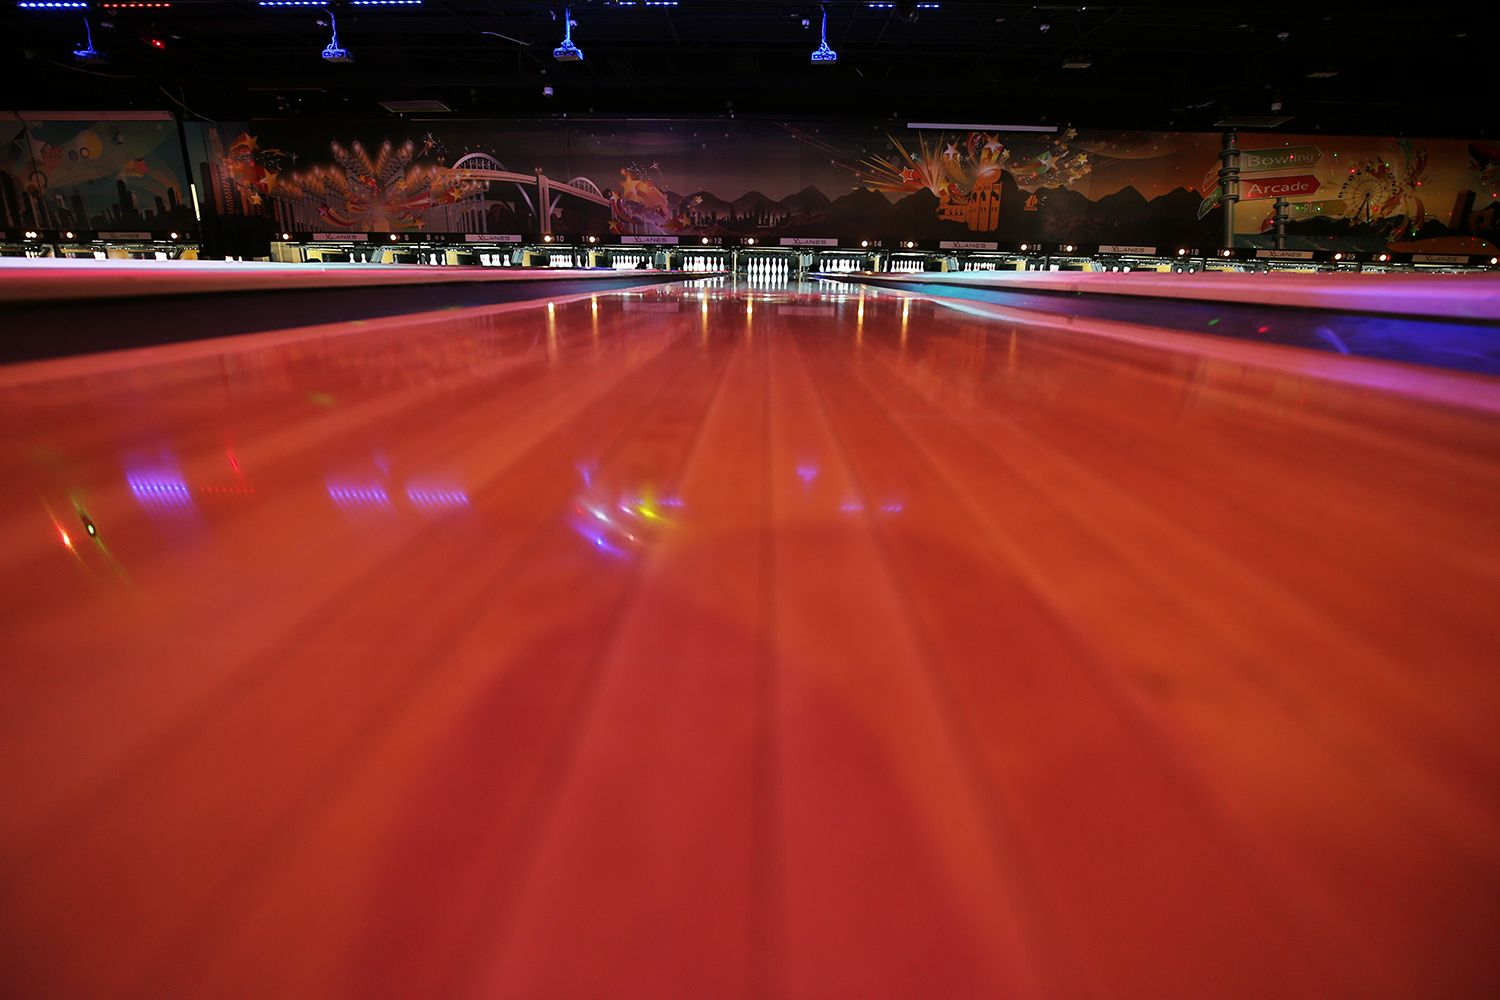 a9c16c0ec Don't miss out on Happy Hour bowling! From 4-7pm Monday through Thursday,  games are just $4 each. Shoes not included. #XLanesLA www.xlanesla.com  (213) 229- ...